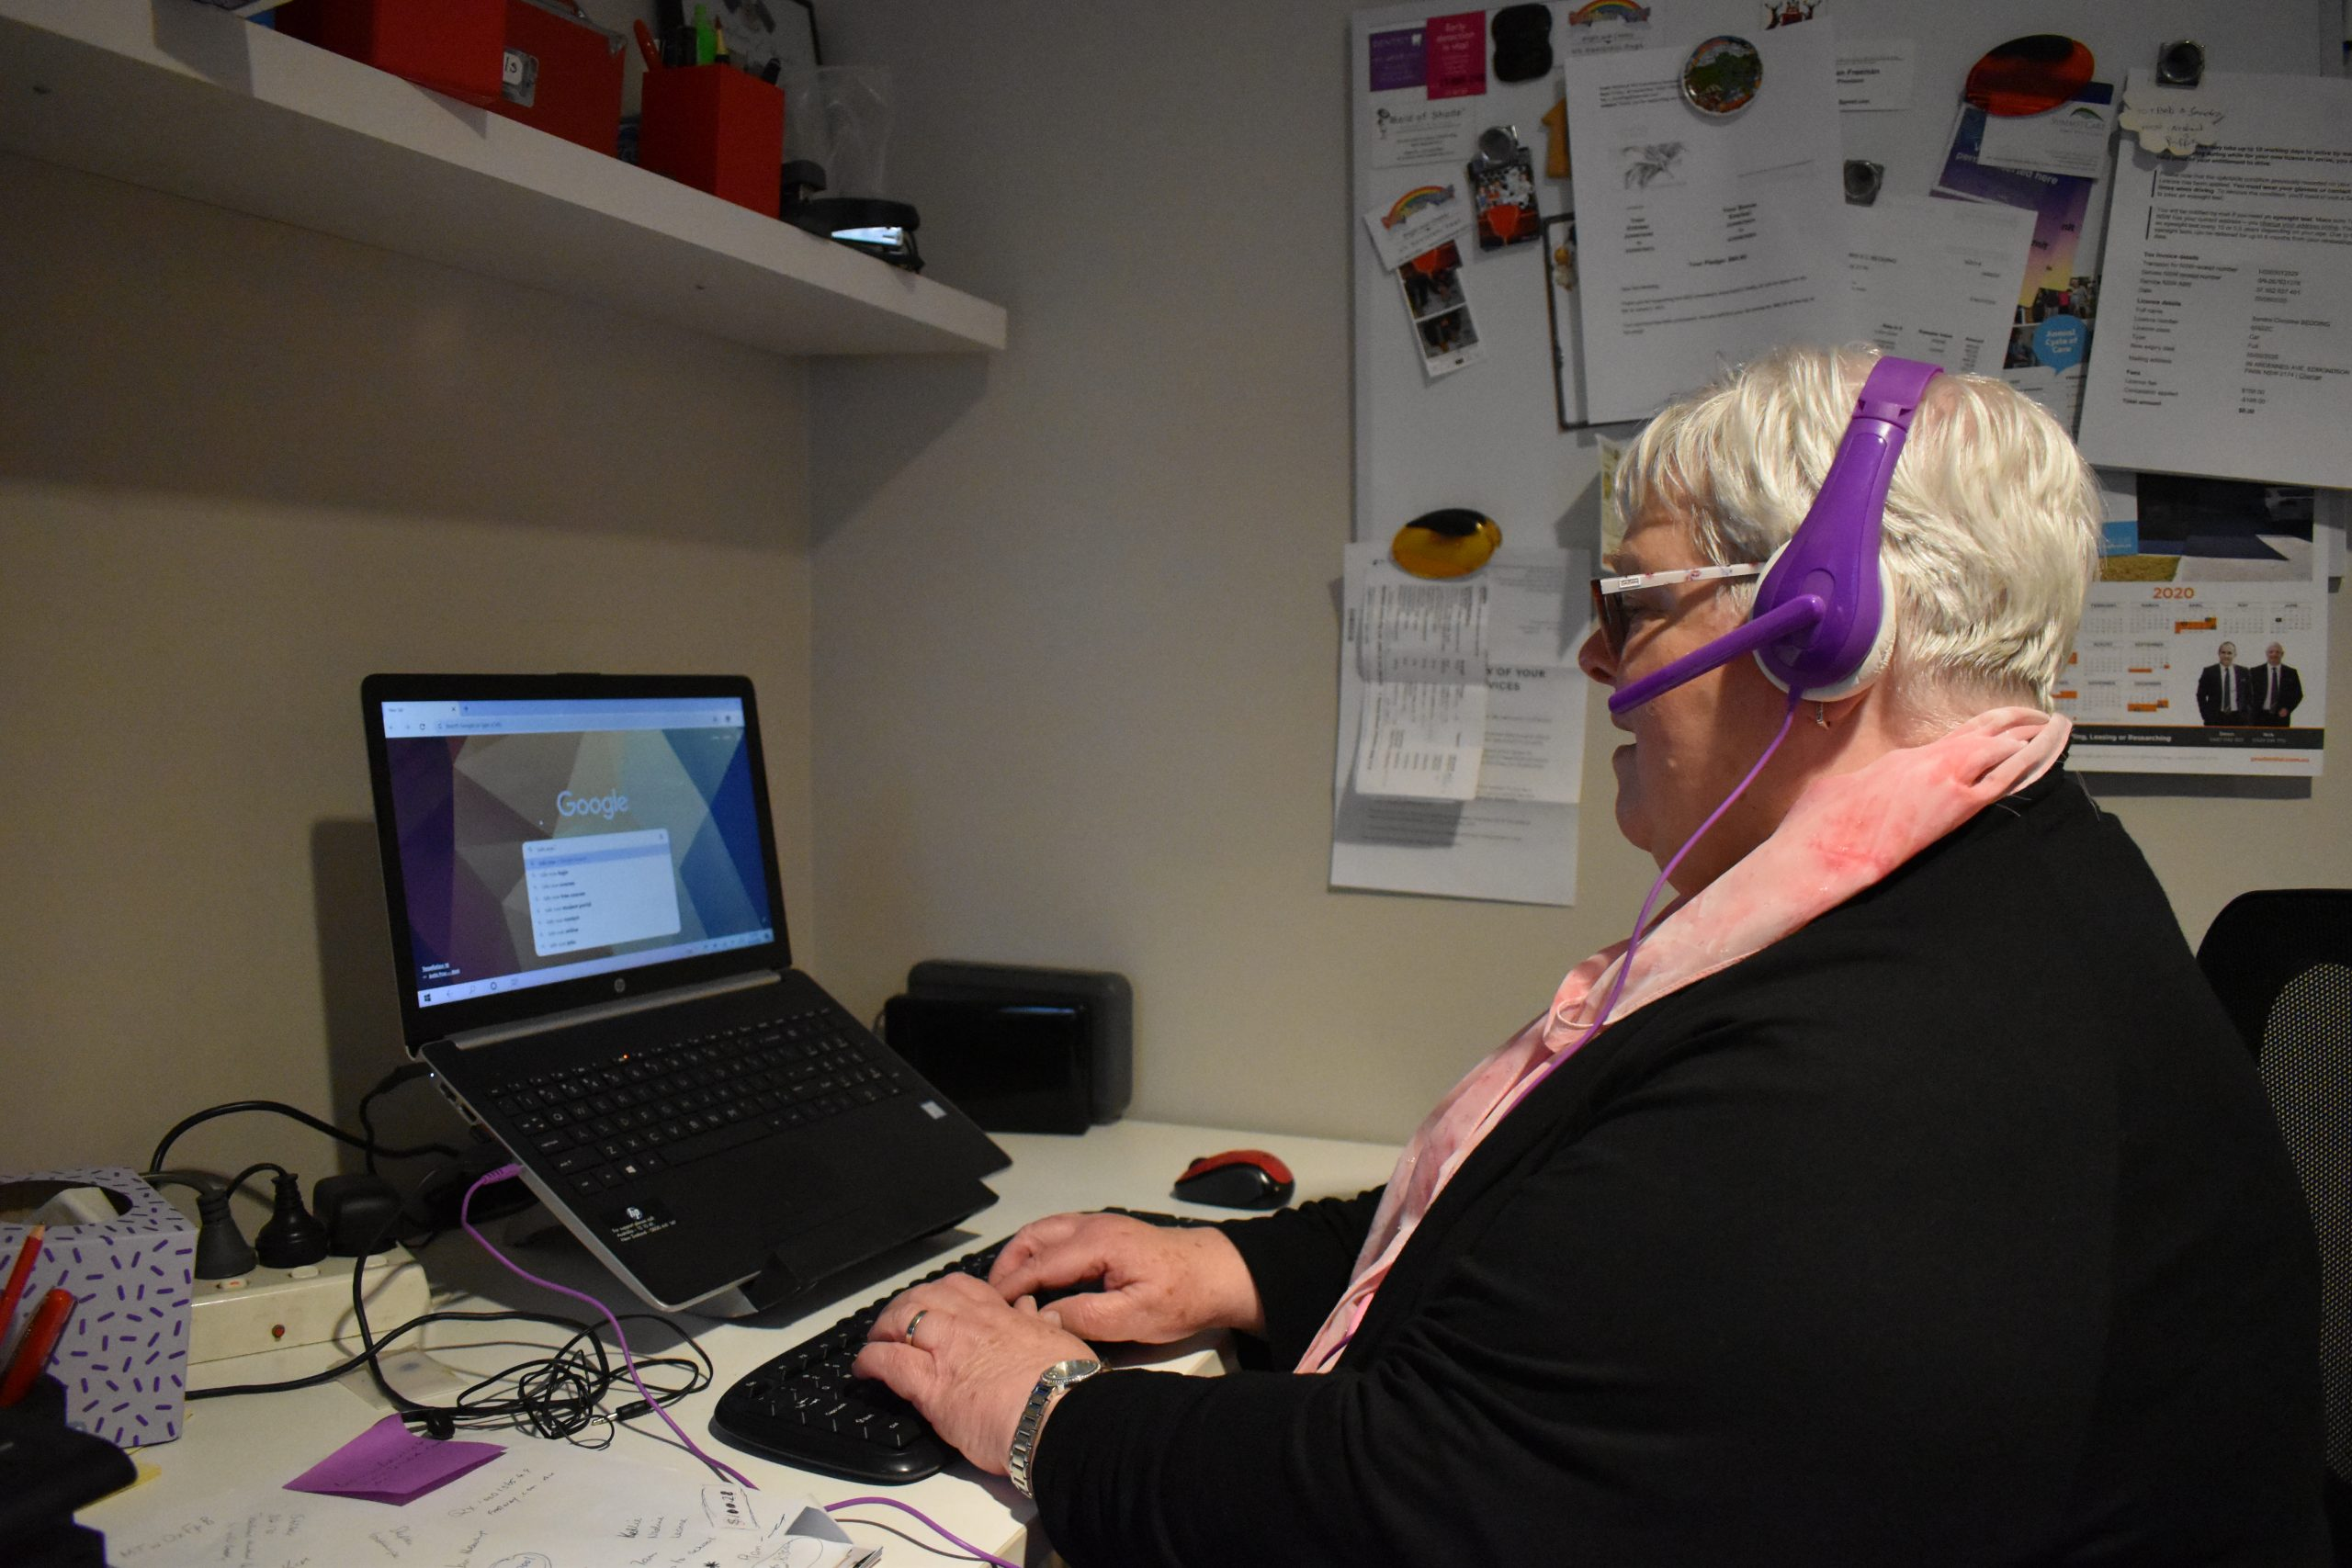 Woman at computer with purple headphones